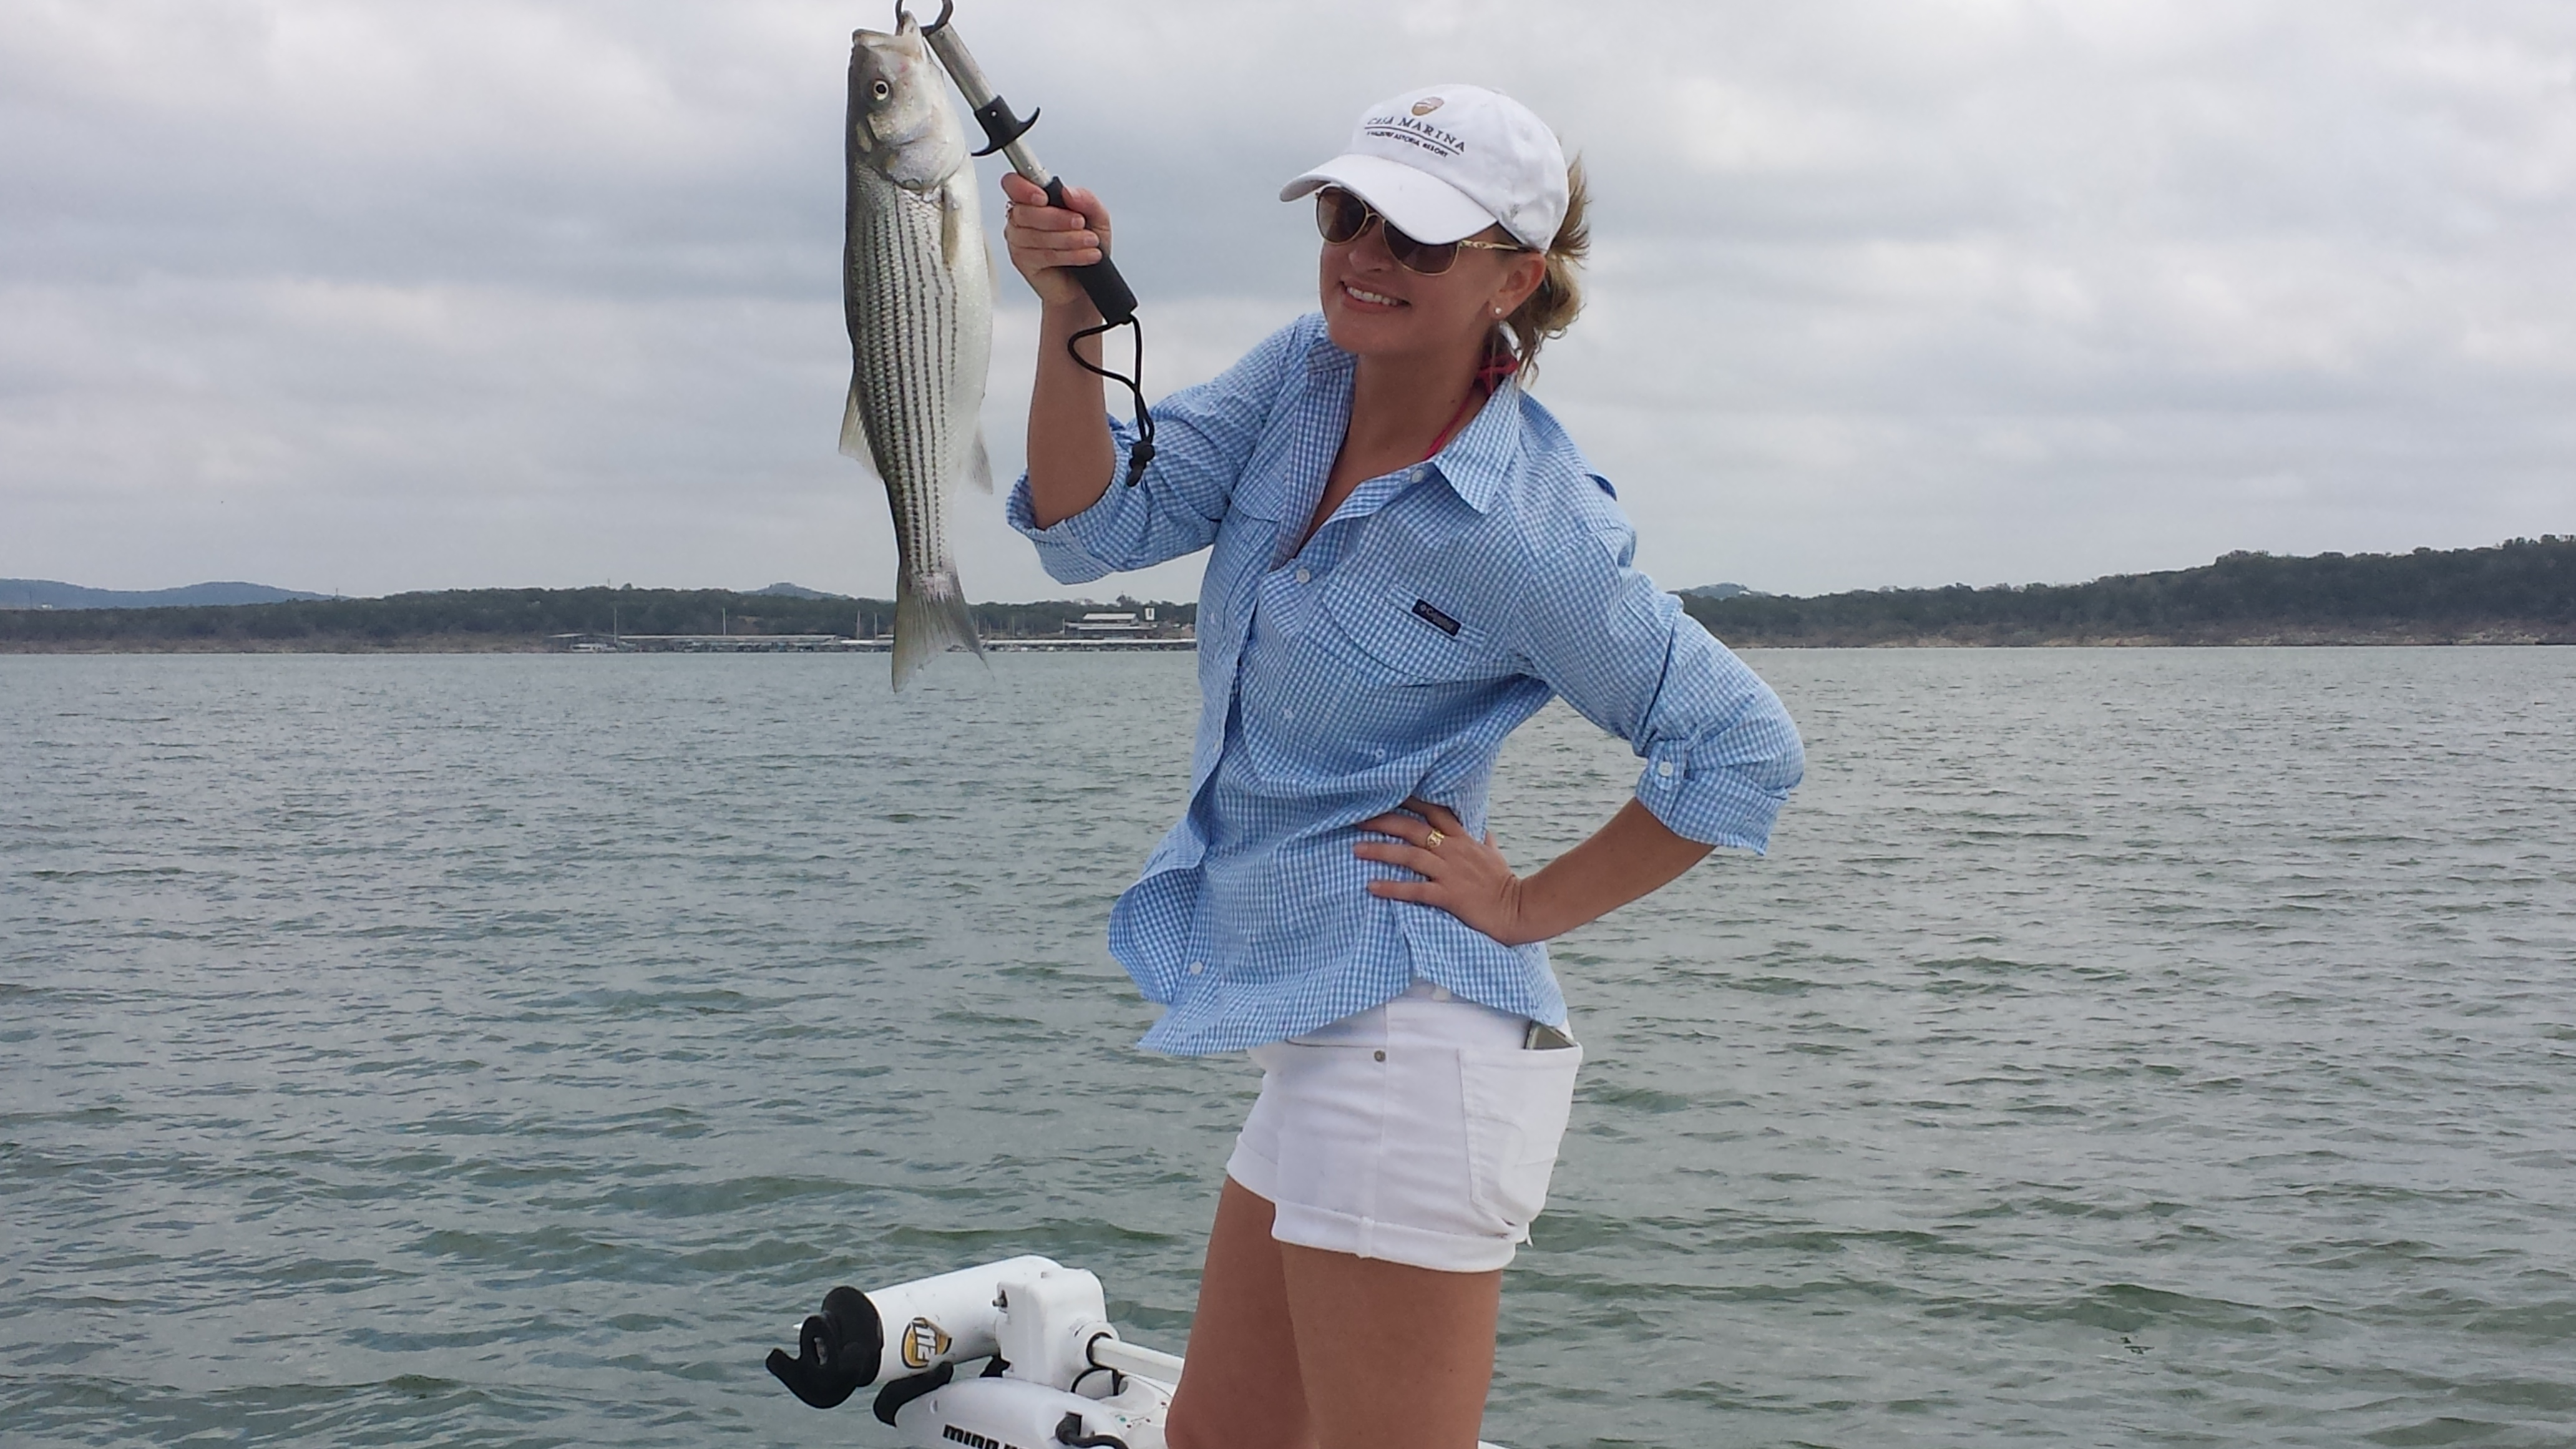 Charter rates san antonio fishing guides for What age do you need a fishing license in texas